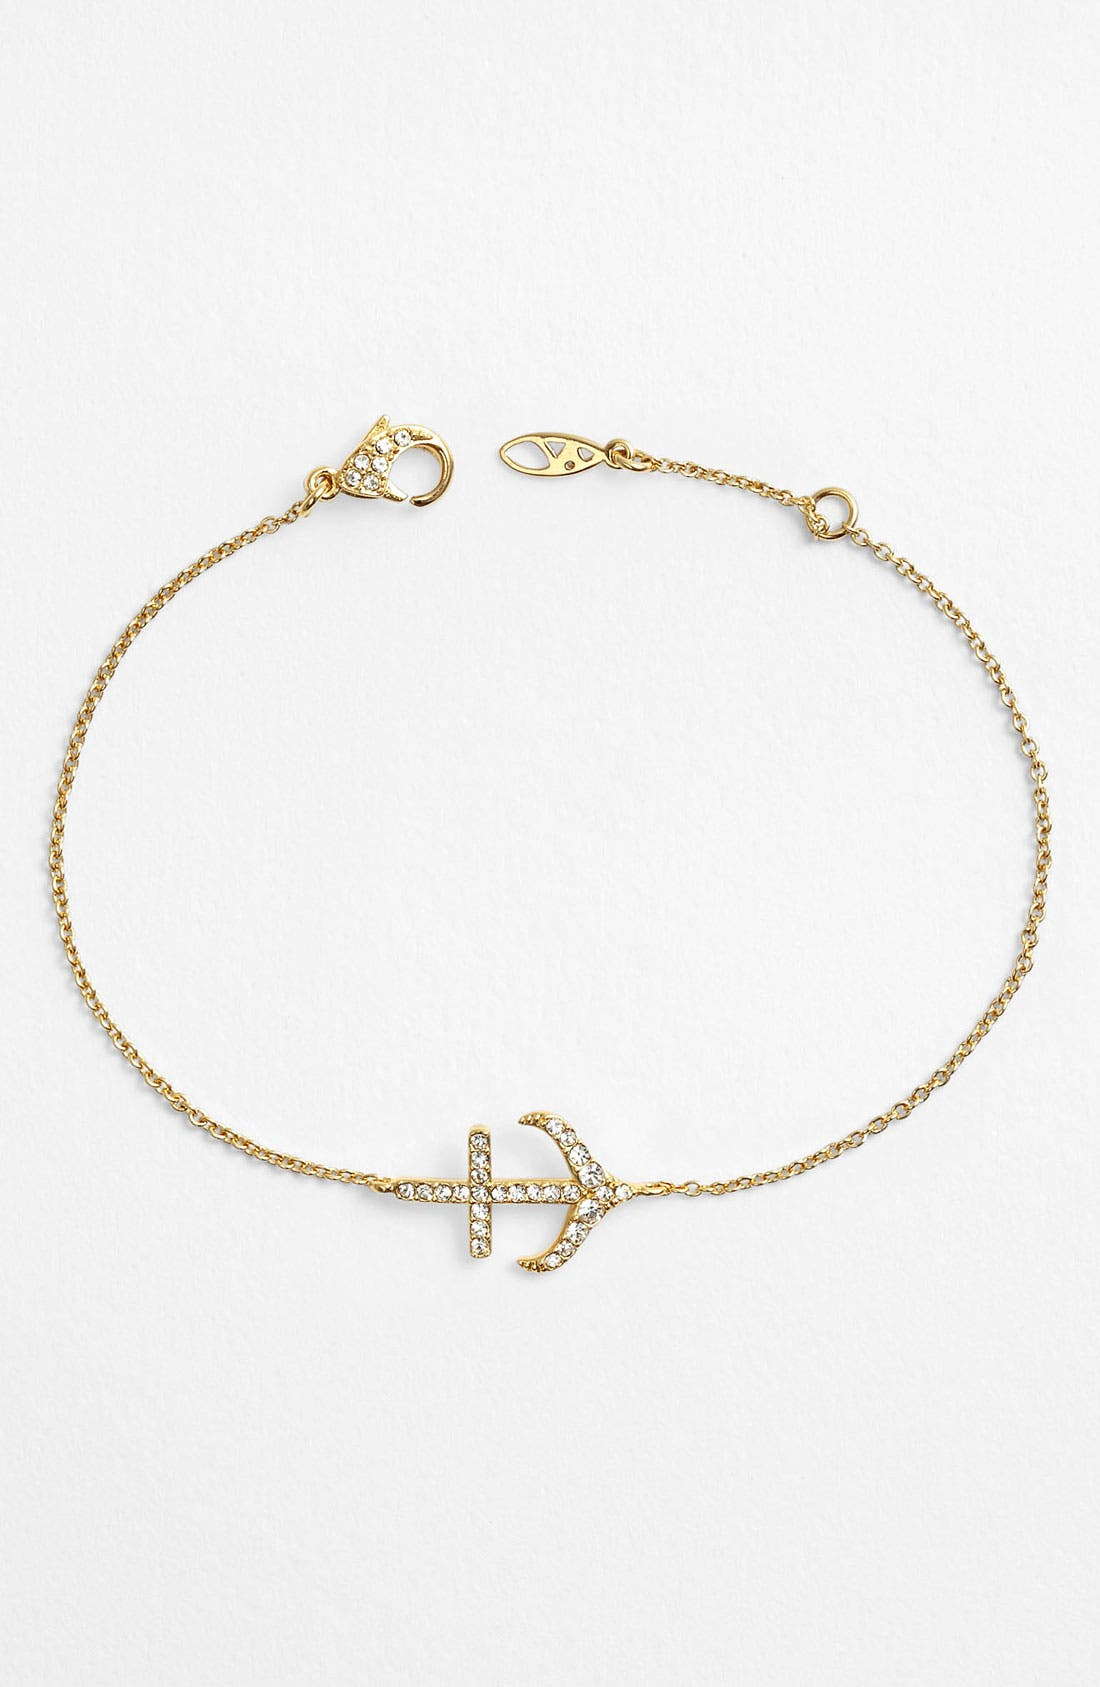 Main Image - Nadri Anchor Station Bracelet (Nordstrom Exclusive)